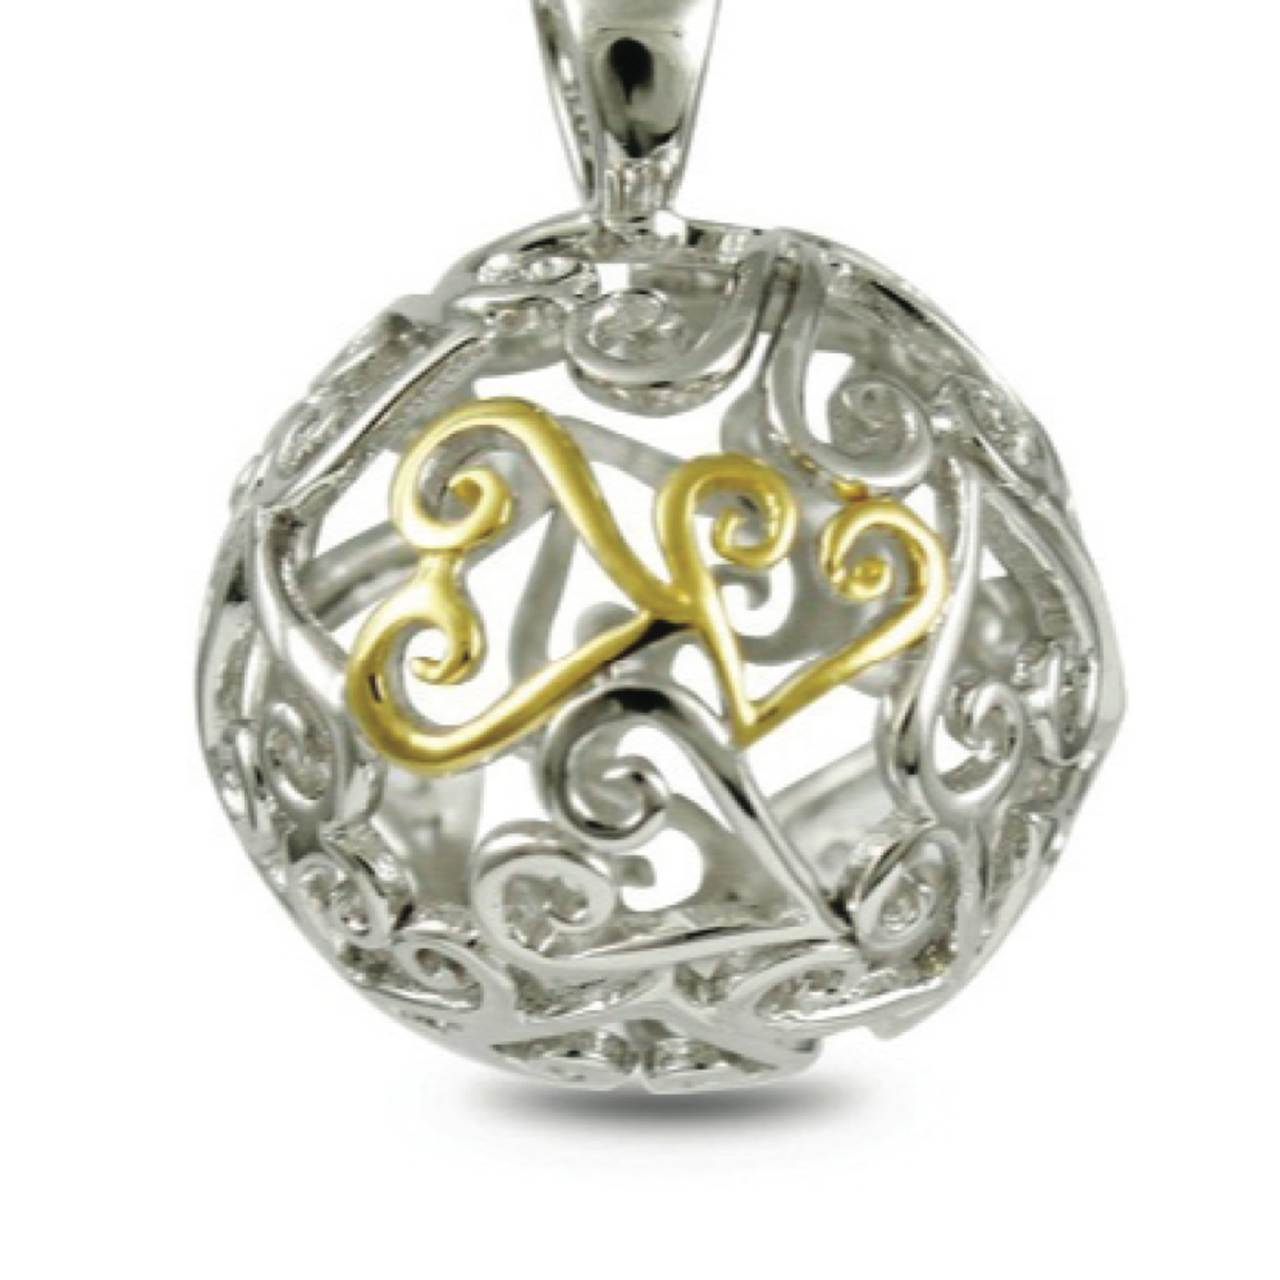 68678 - Sphere of Life 'Supreme' Pendant in Sterling Silver